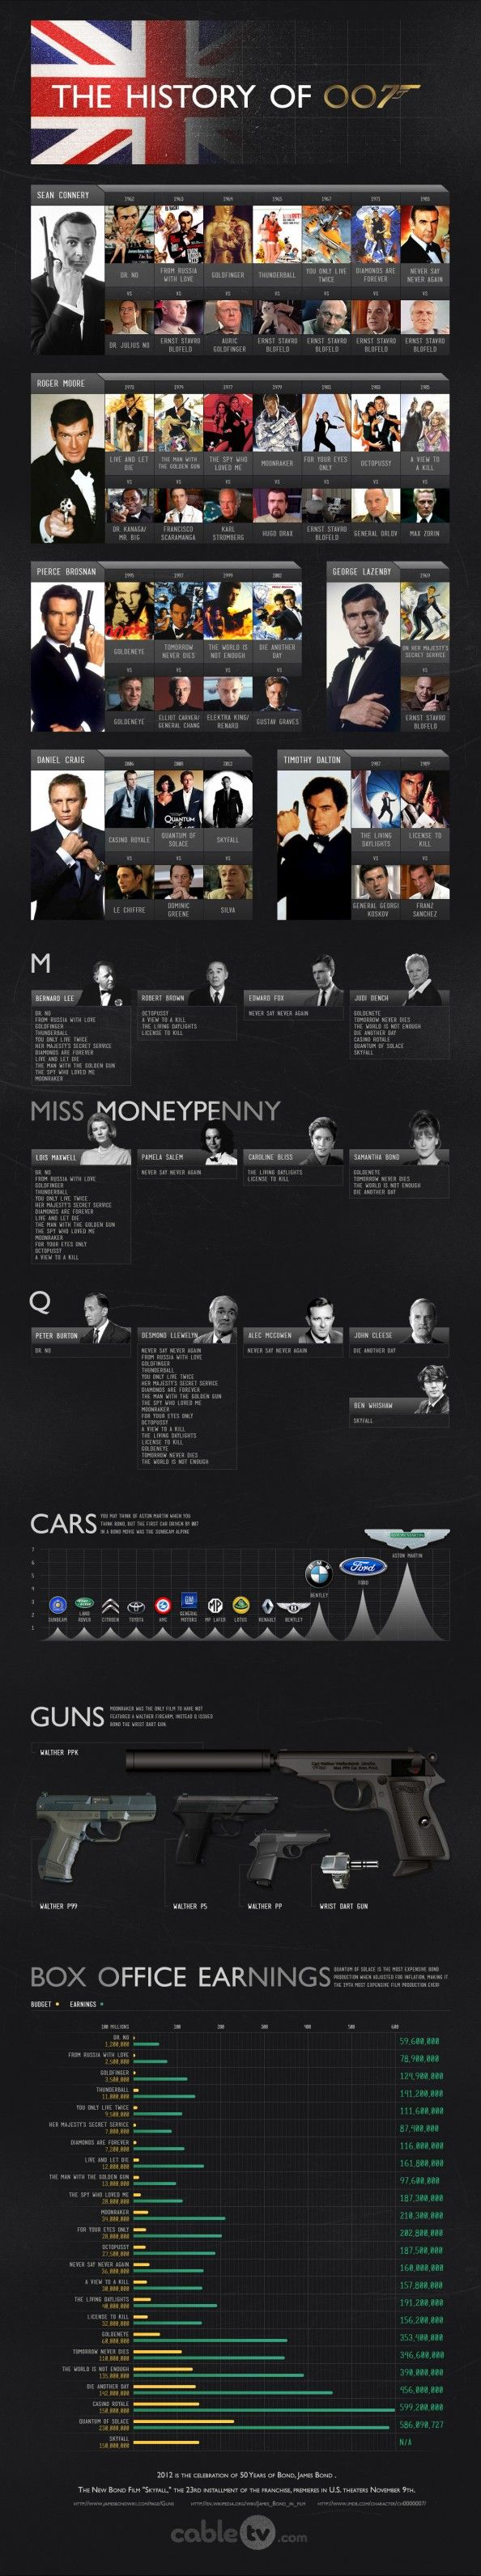 [INFOGRAPHIC] The History of #007! 2012 is the 50th anniversary of Bond, #JamesBond! Who is your favourite Bond?